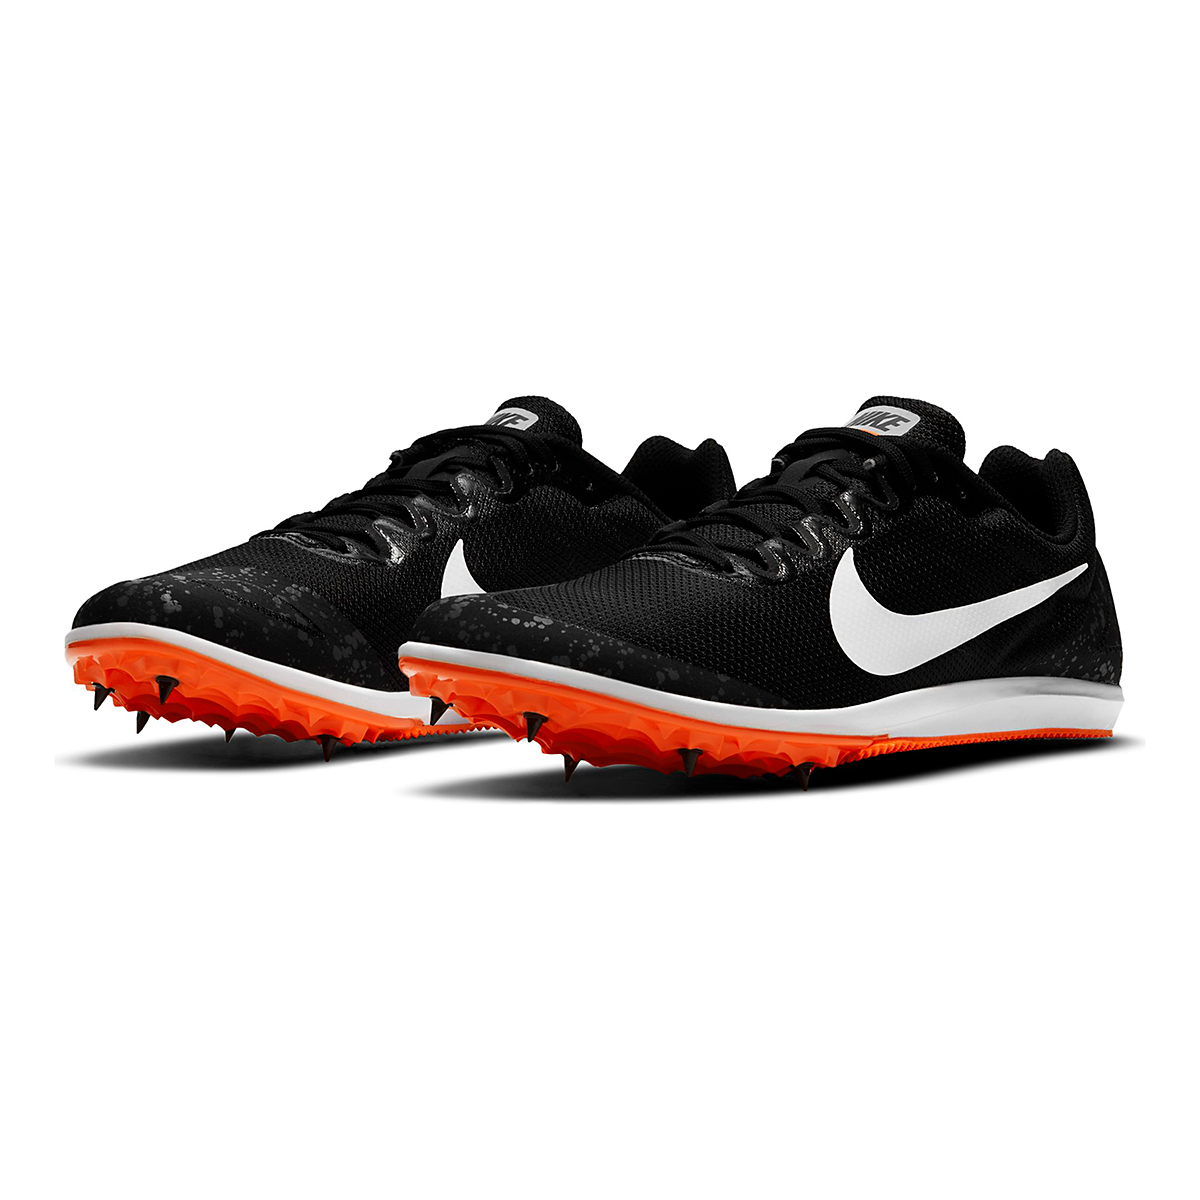 Nike Zoom Rival D 10 Track Spikes - Color: Black/White/Iron Grey/Hyper Crimson - Size: M4/W5.5 - Width: Regular, Black/White/Iron Grey/Hyper Crimson, large, image 4